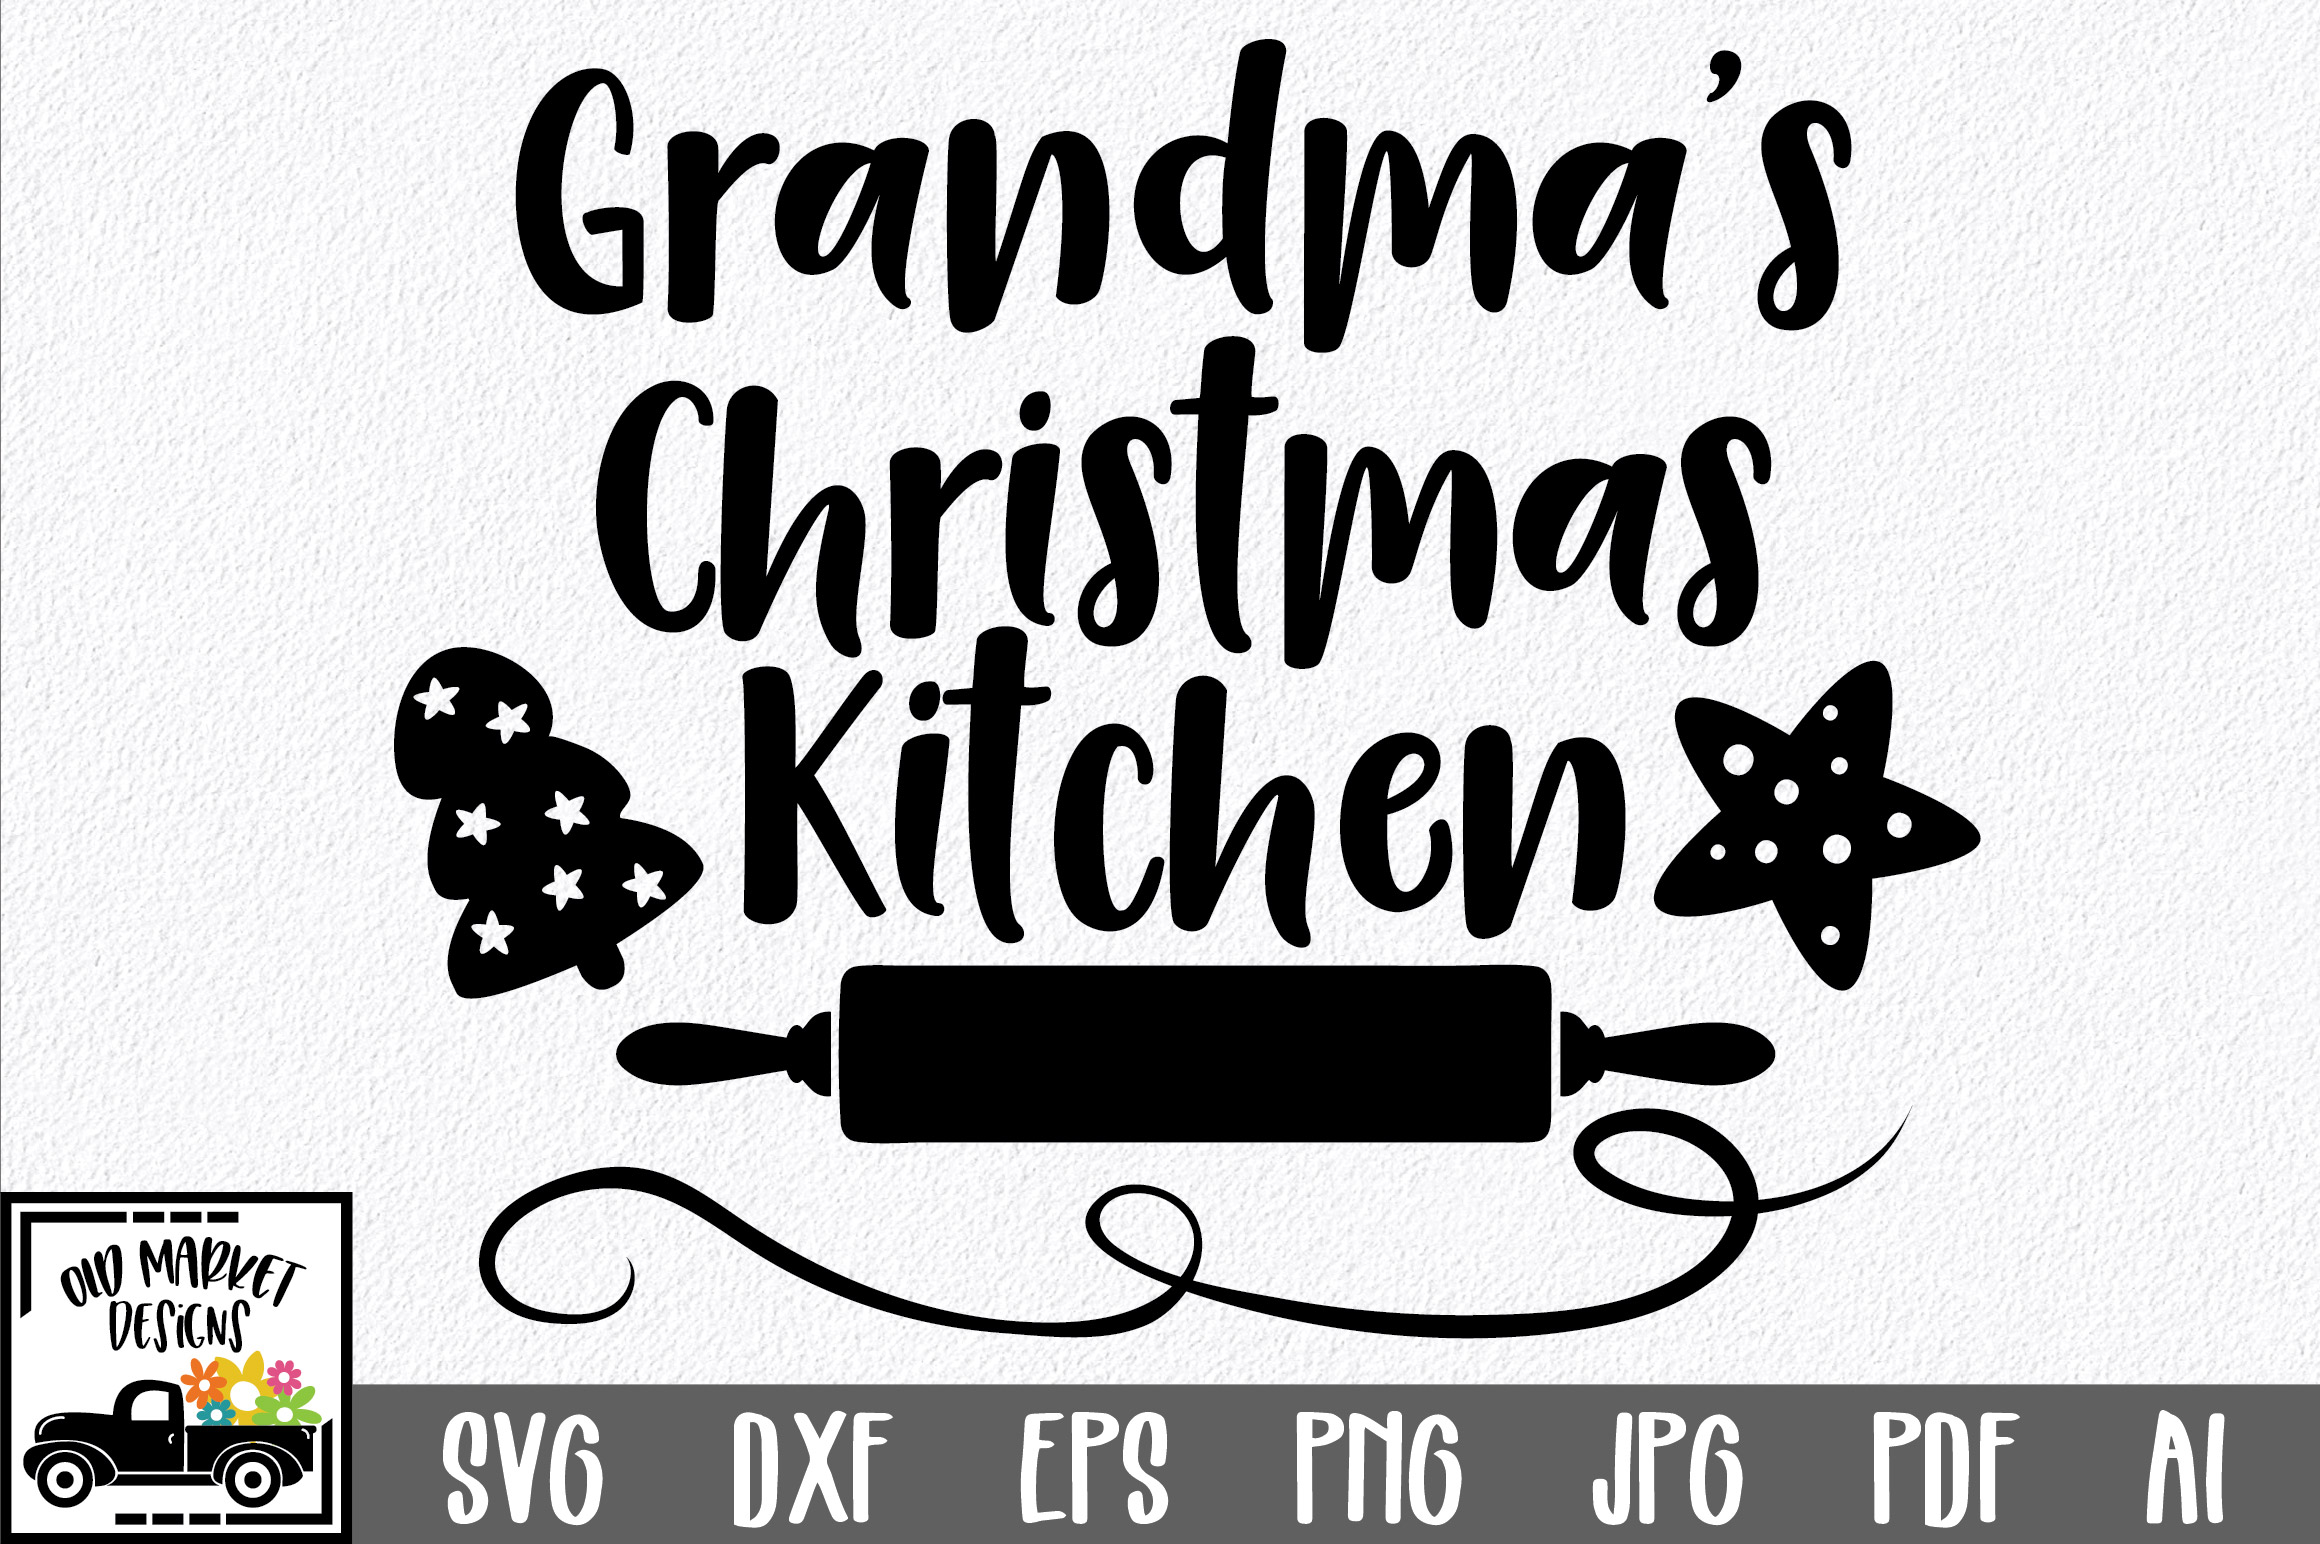 Download Free Grandma S Kitchen Graphic By Oldmarketdesigns Creative Fabrica for Cricut Explore, Silhouette and other cutting machines.